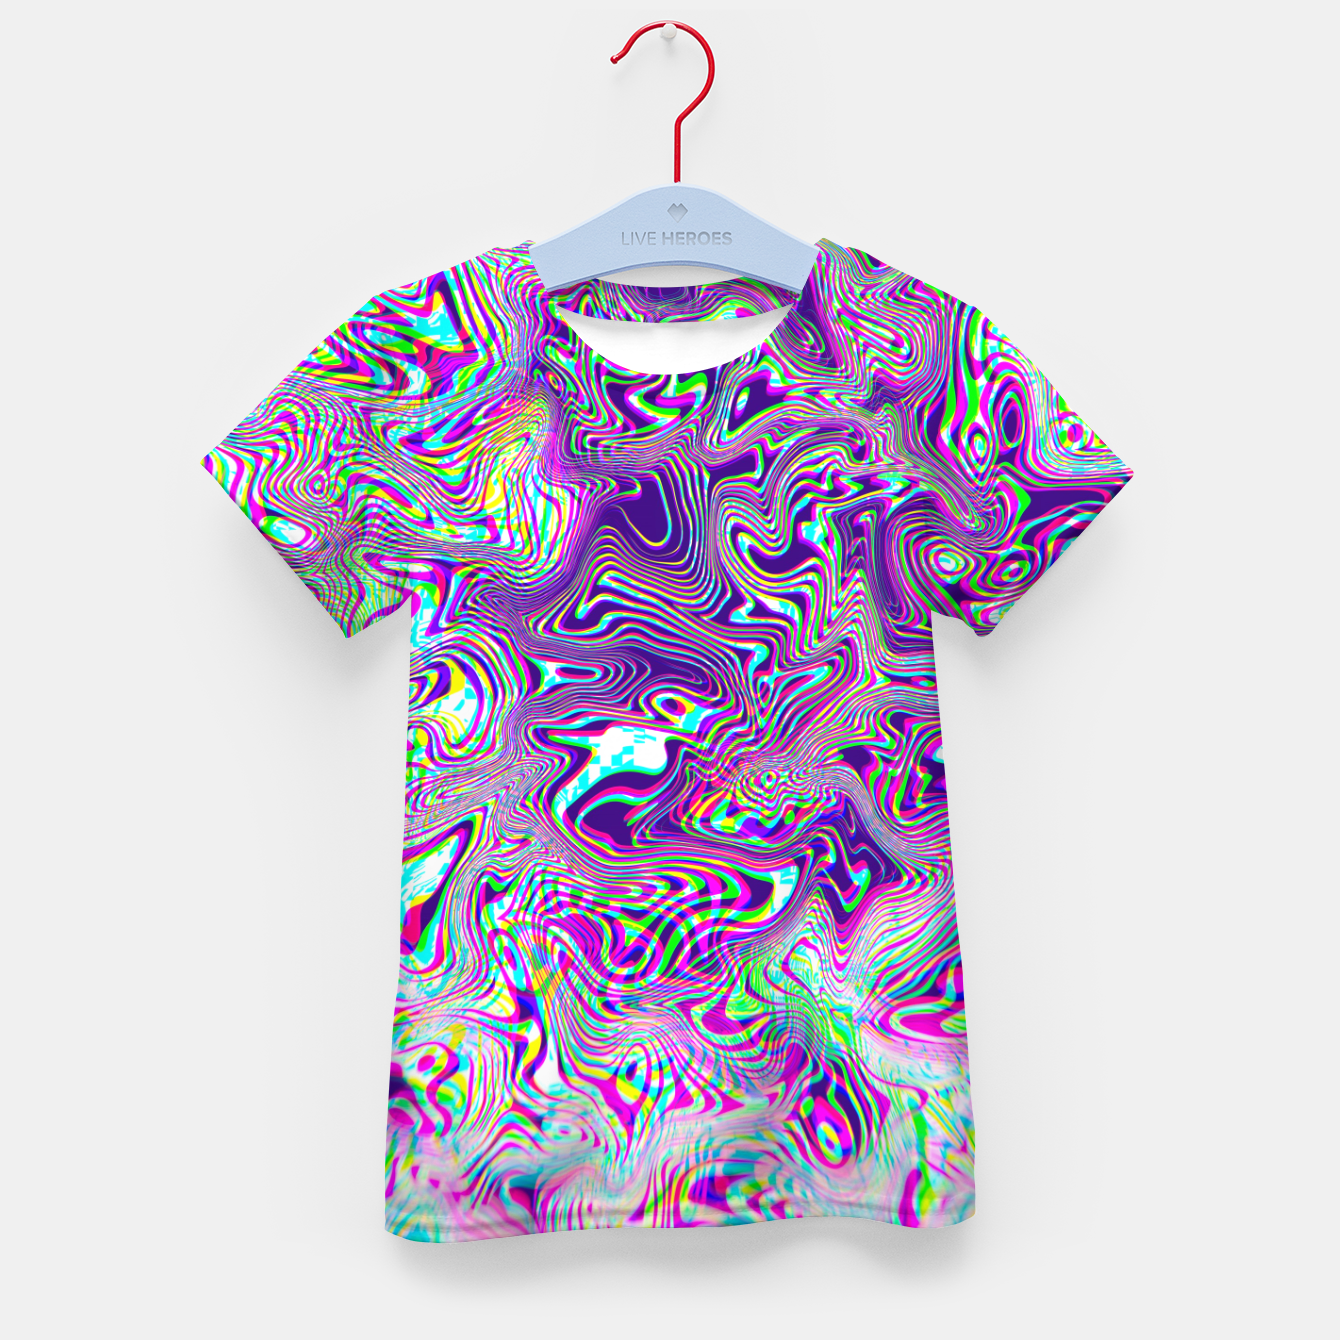 Zdjęcie Dope Glitch Waves Kid's t-shirt - Live Heroes